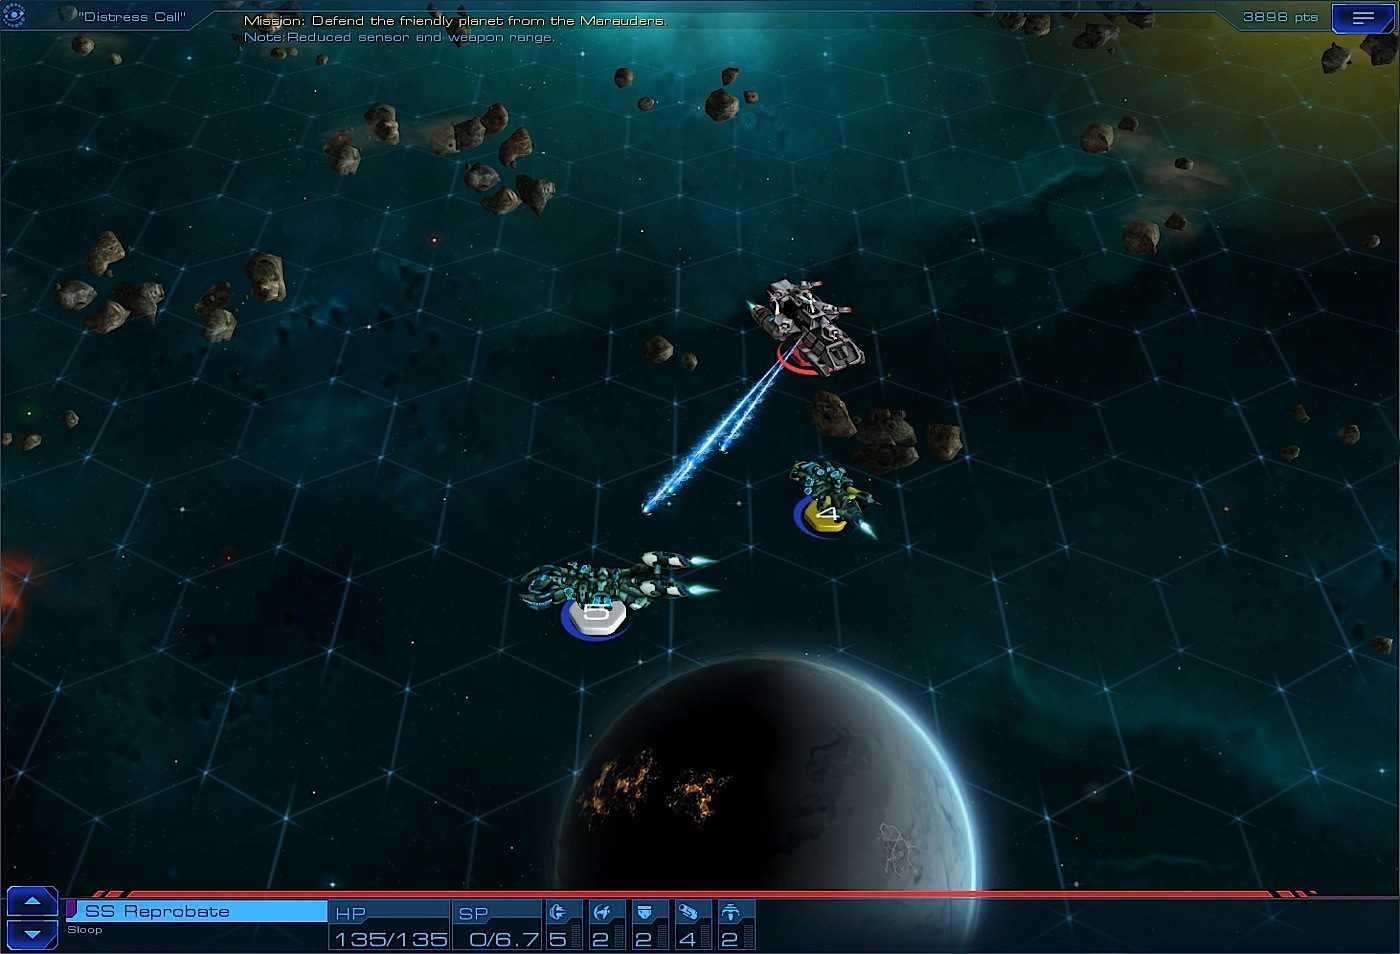 Sid Meier's Starships combat marauder screenshot.